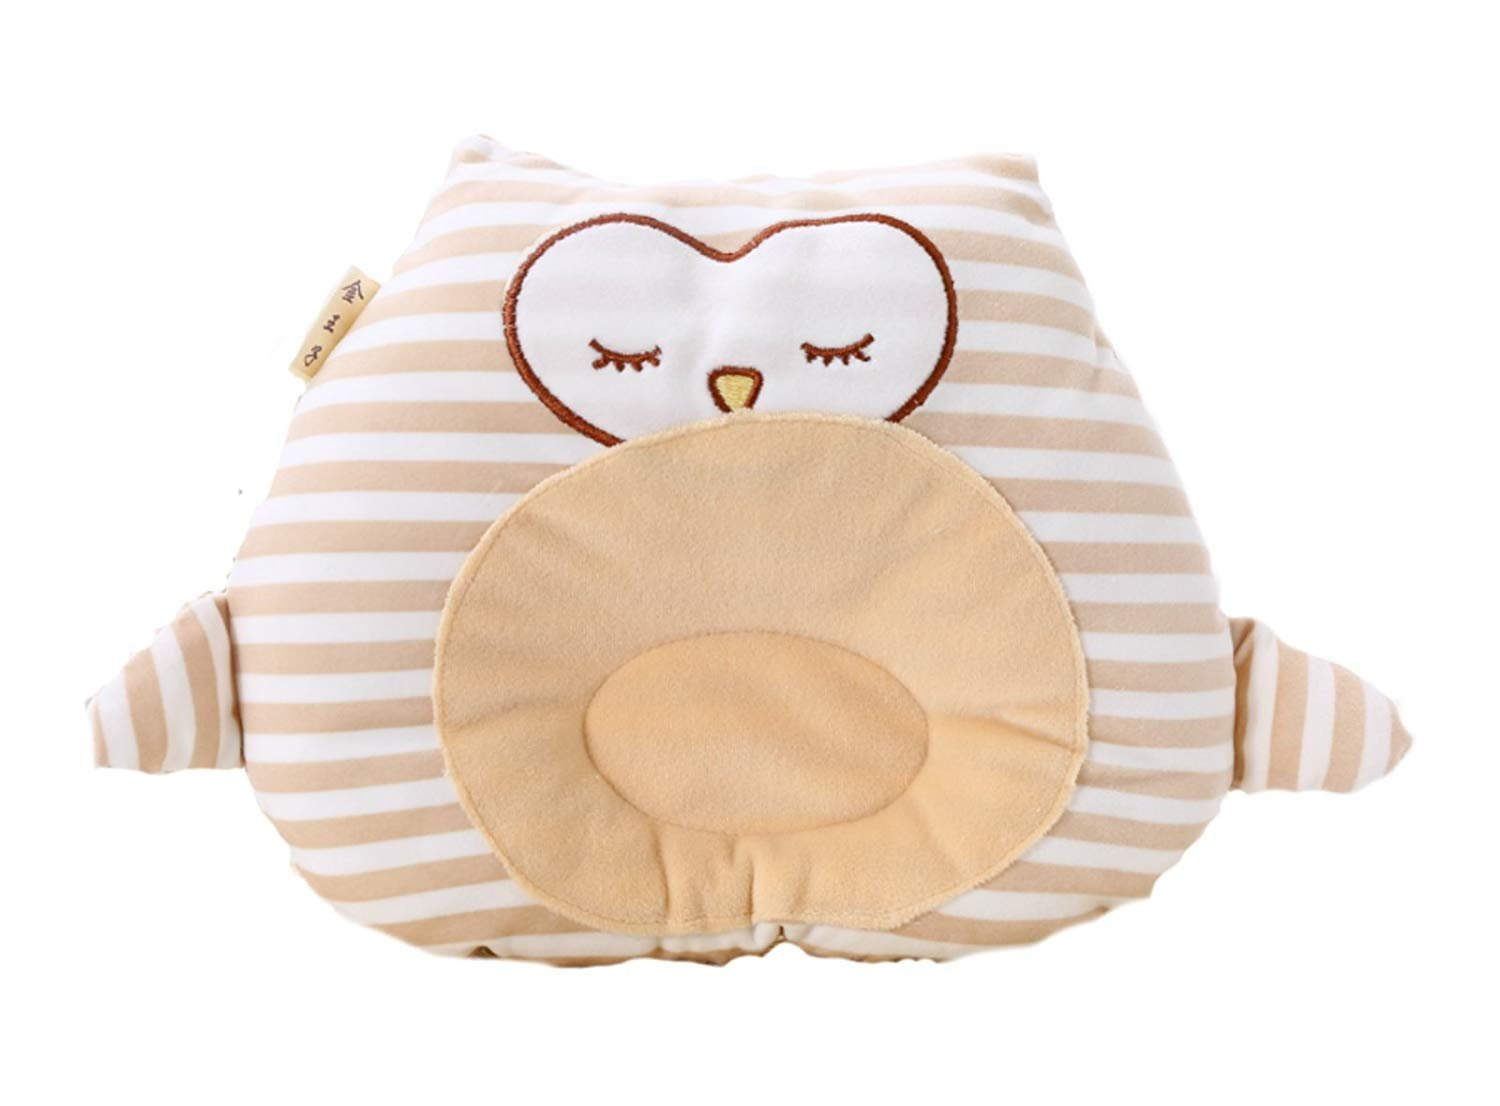 Baby Head Shaping Pillow - No More Flat Head for Infants and Newborns